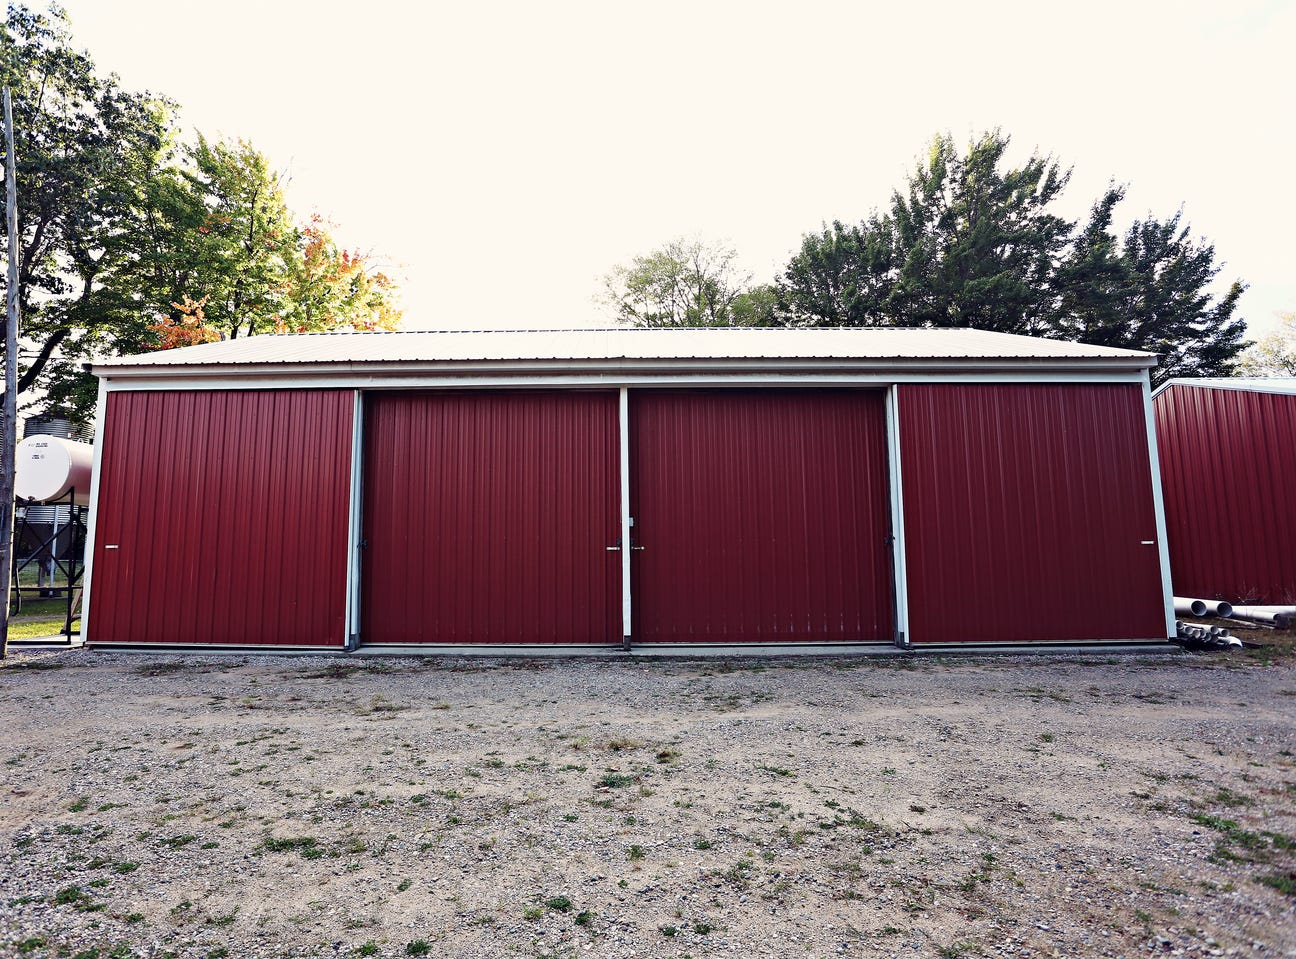 """""""It's very unique and there are multiple homes and multiple pole barns on the property,"""" said Kyle O'Grady, the Realtor who listed the property."""